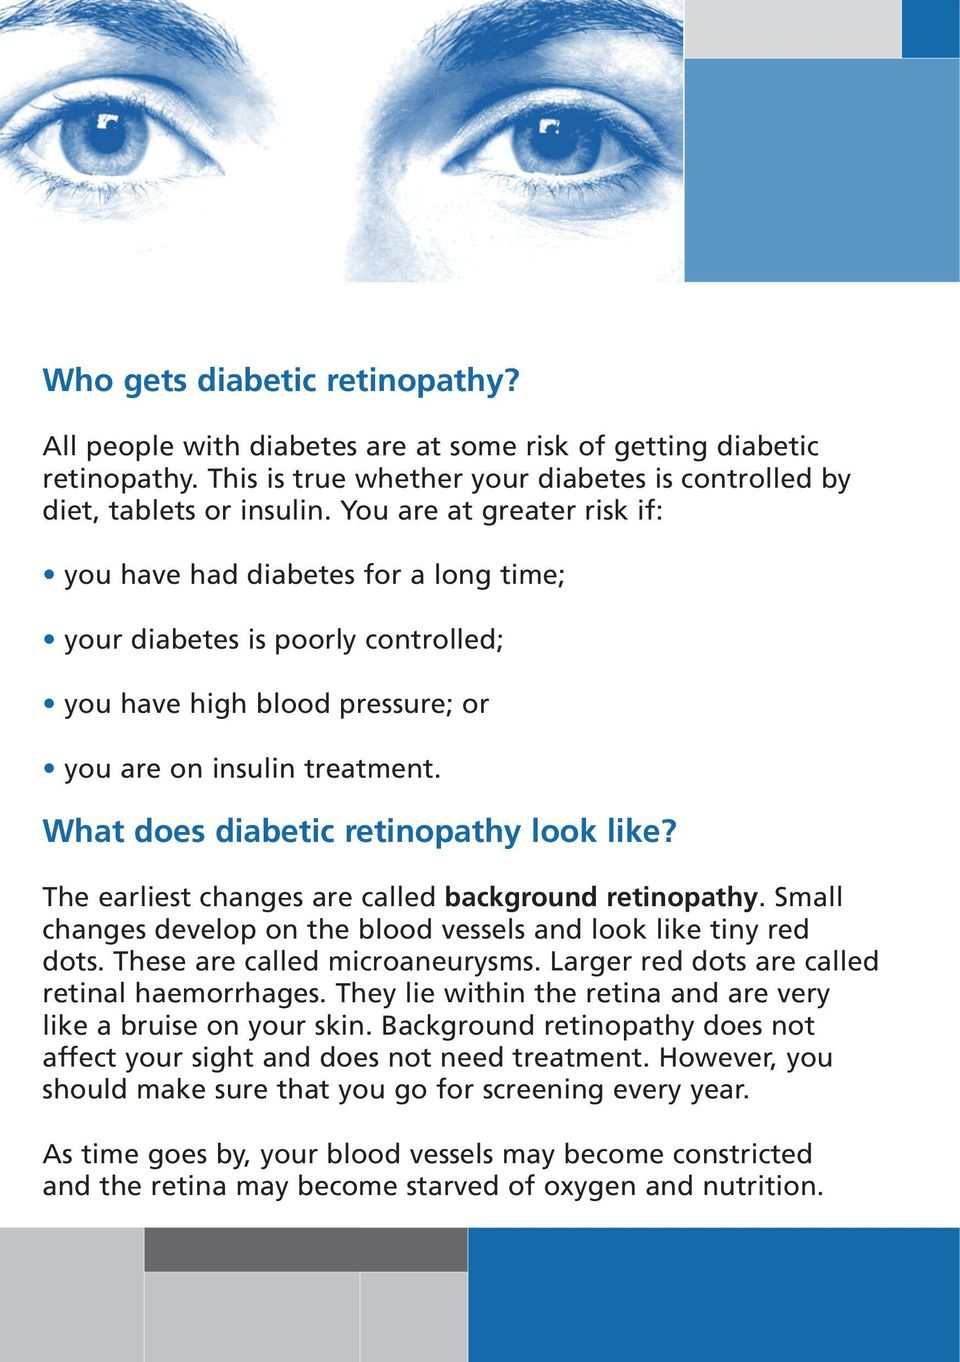 What does diabetic retinopathy look like? The earliest changes are called background retinopathy. Small changes develop on the blood vessels and look like tiny red dots.